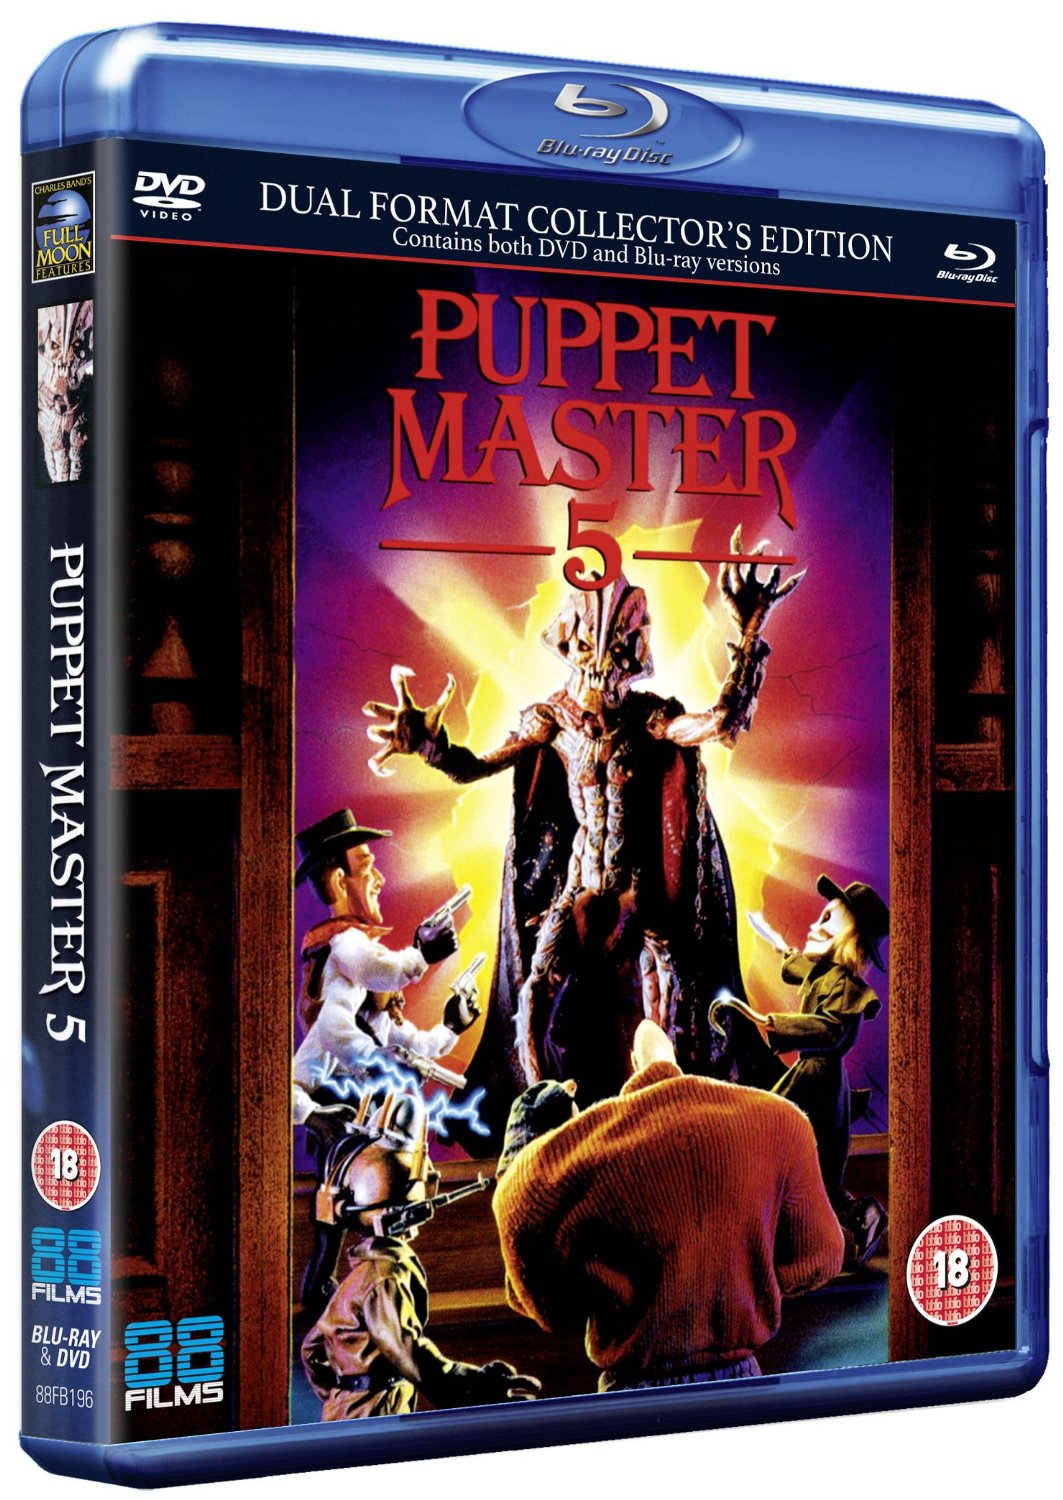 Puppet Master 5 UK Blu-Ray